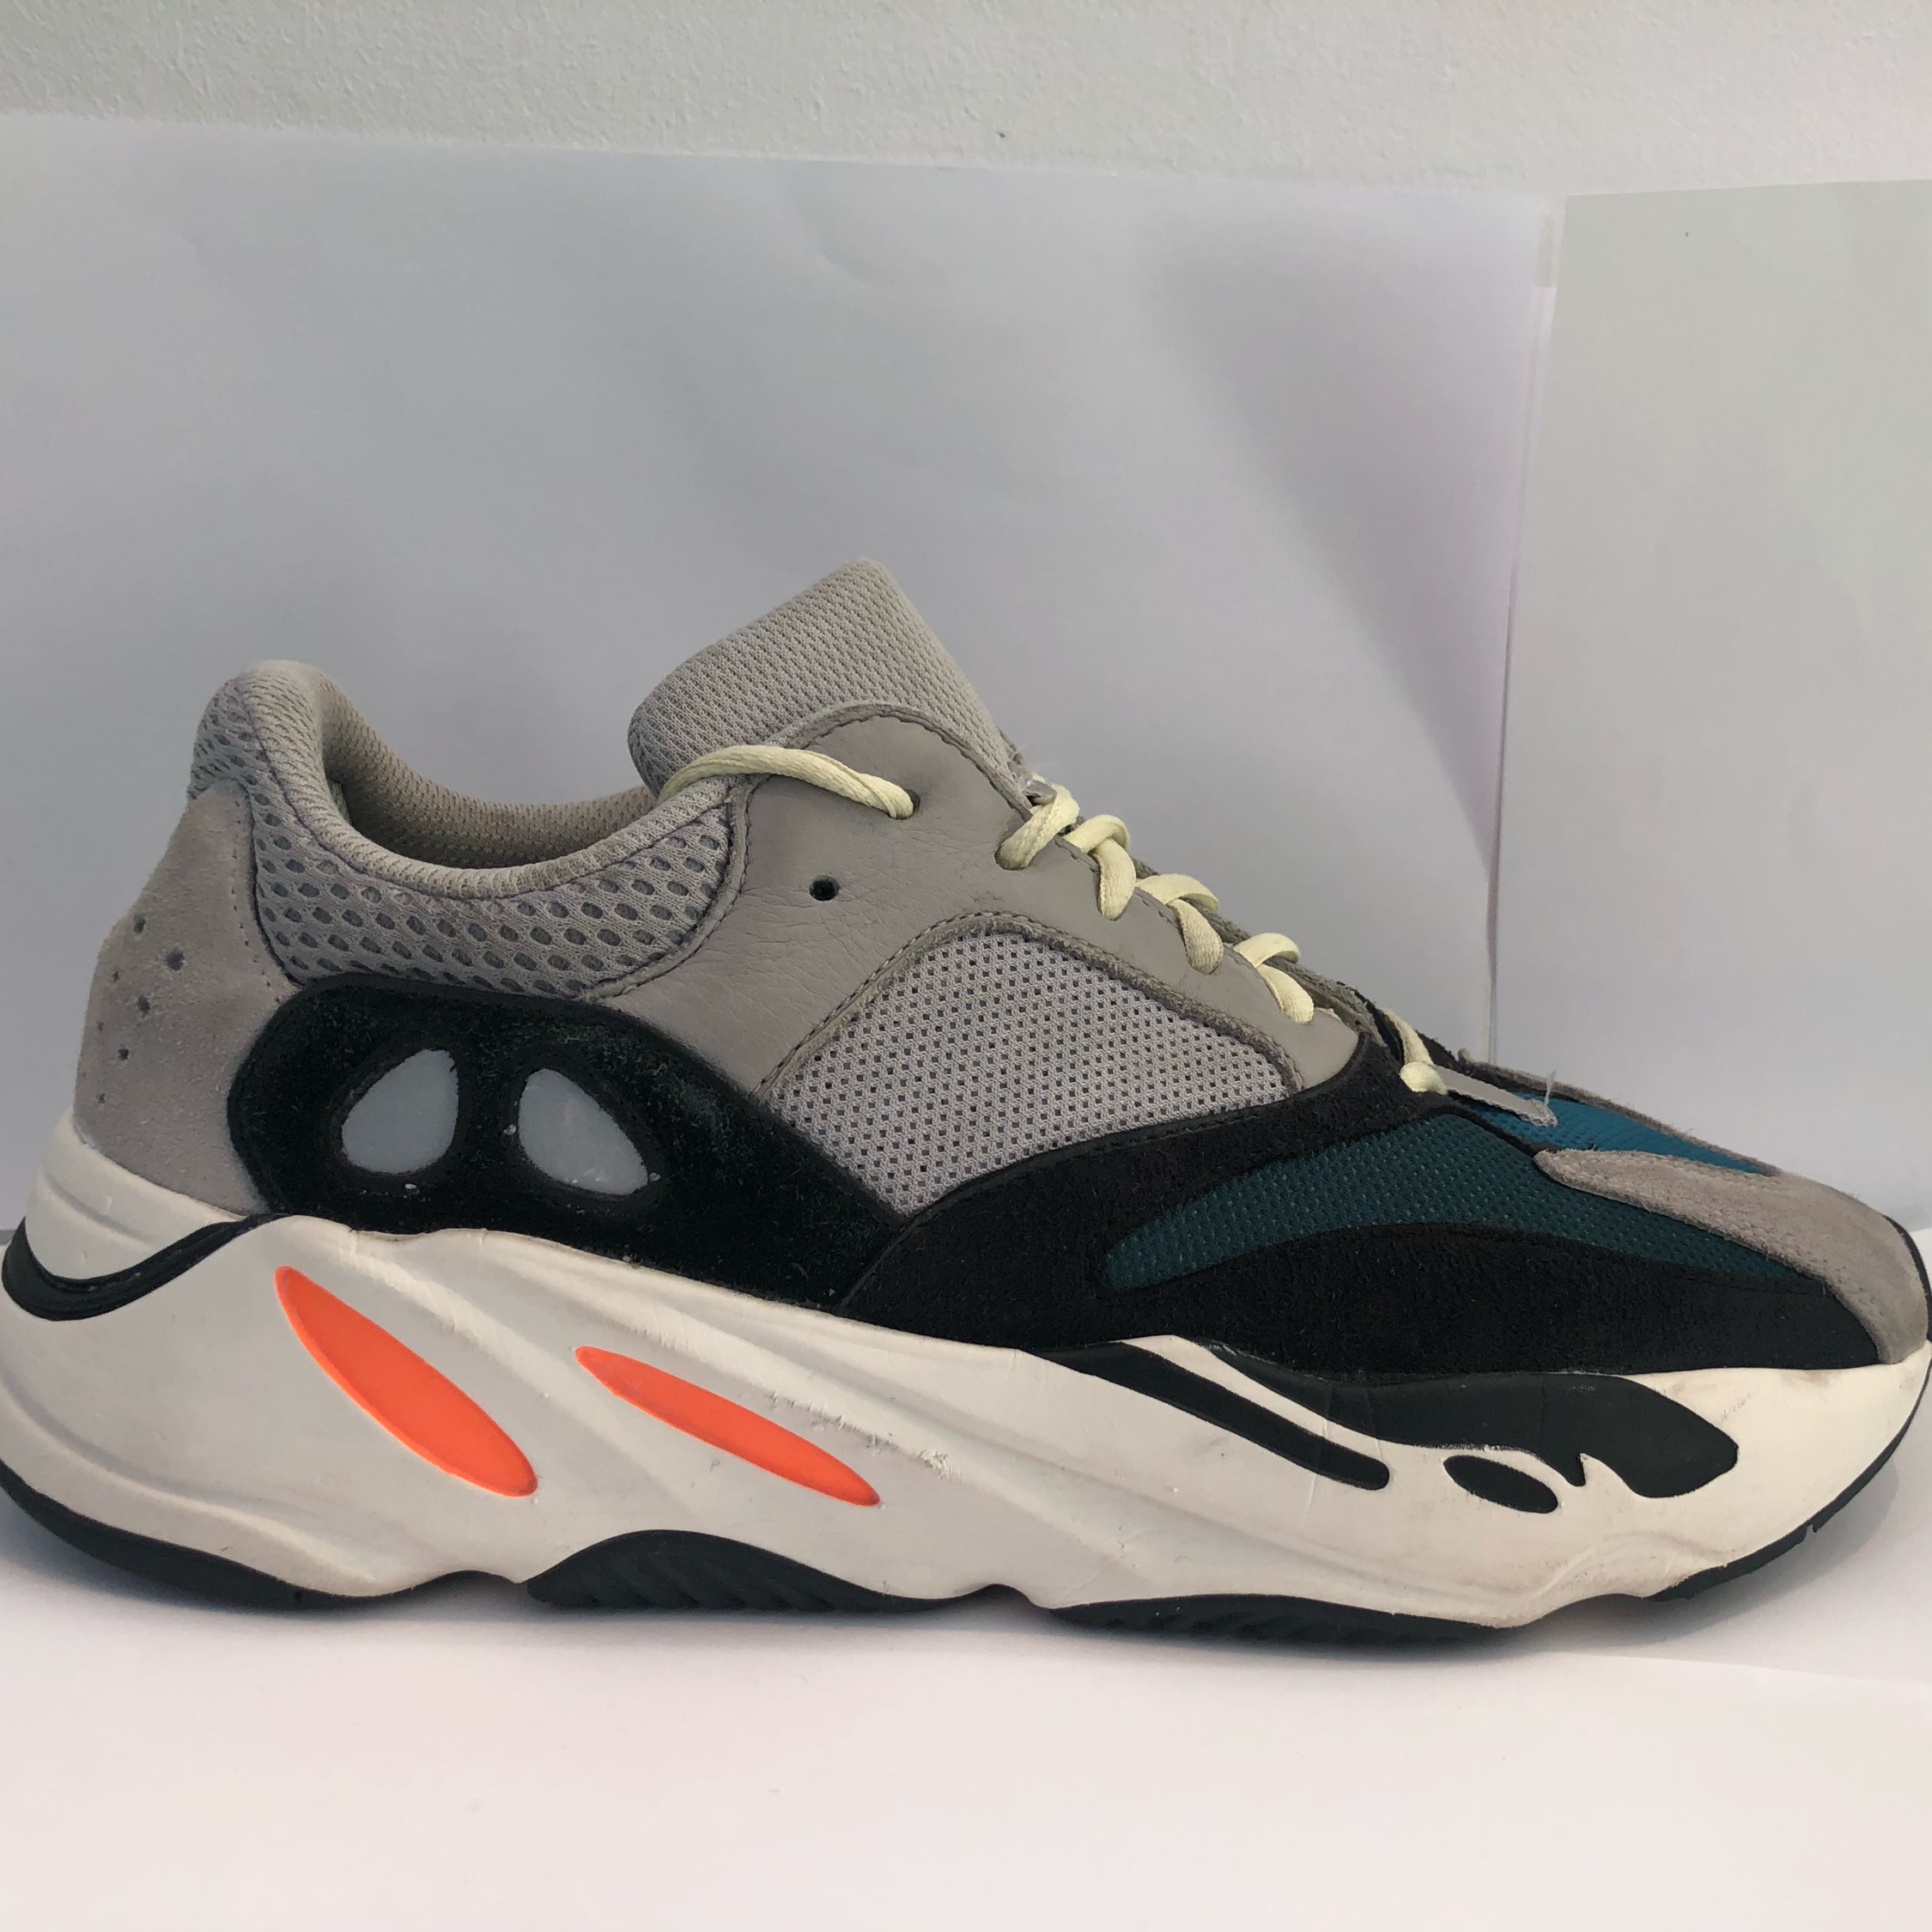 the latest f6825 b6fe4 Adidas Yeezy 700